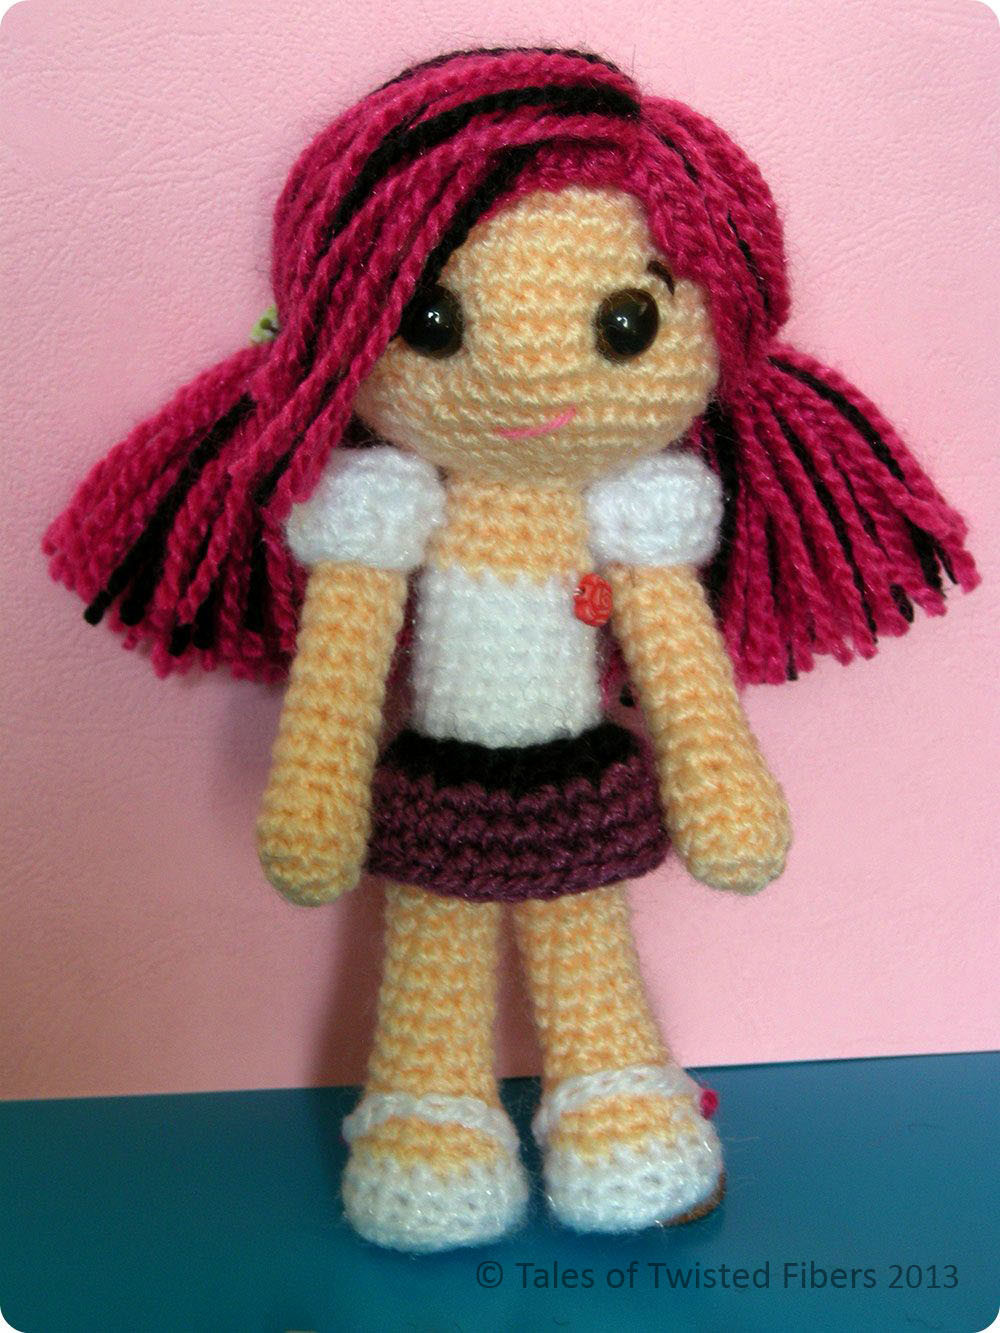 Crochet Doll Awesome Amy the Amigurumi Doll Free Pattern – Tales Of Twisted Fibers Of Crochet Doll Inspirational Snow White Doll Crochet Pattern